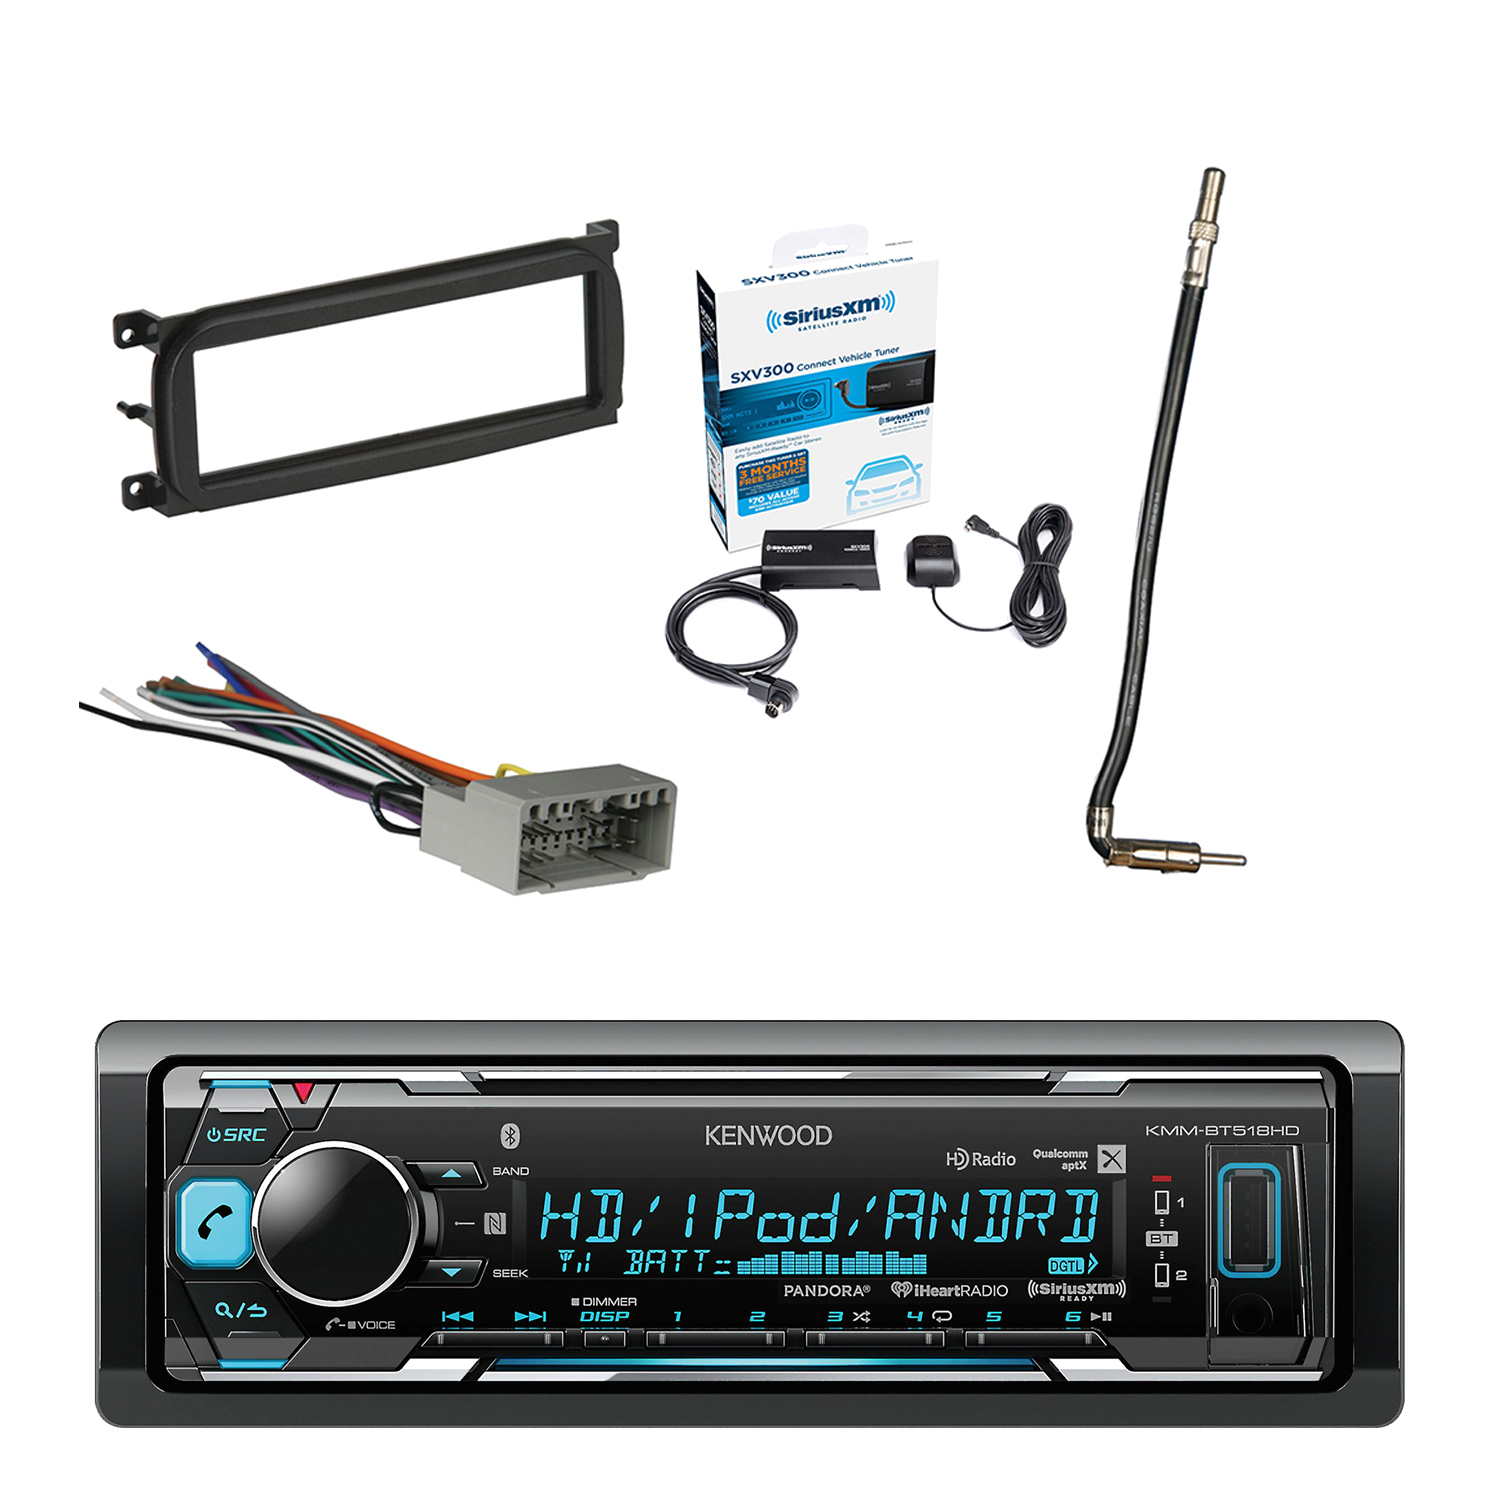 hight resolution of kenwood in dash stereo receiver bluetooth with sirius radio tuner metra dash kit for chry dodge jeep 98 up metra chrysler 2002 antenna adapter cable